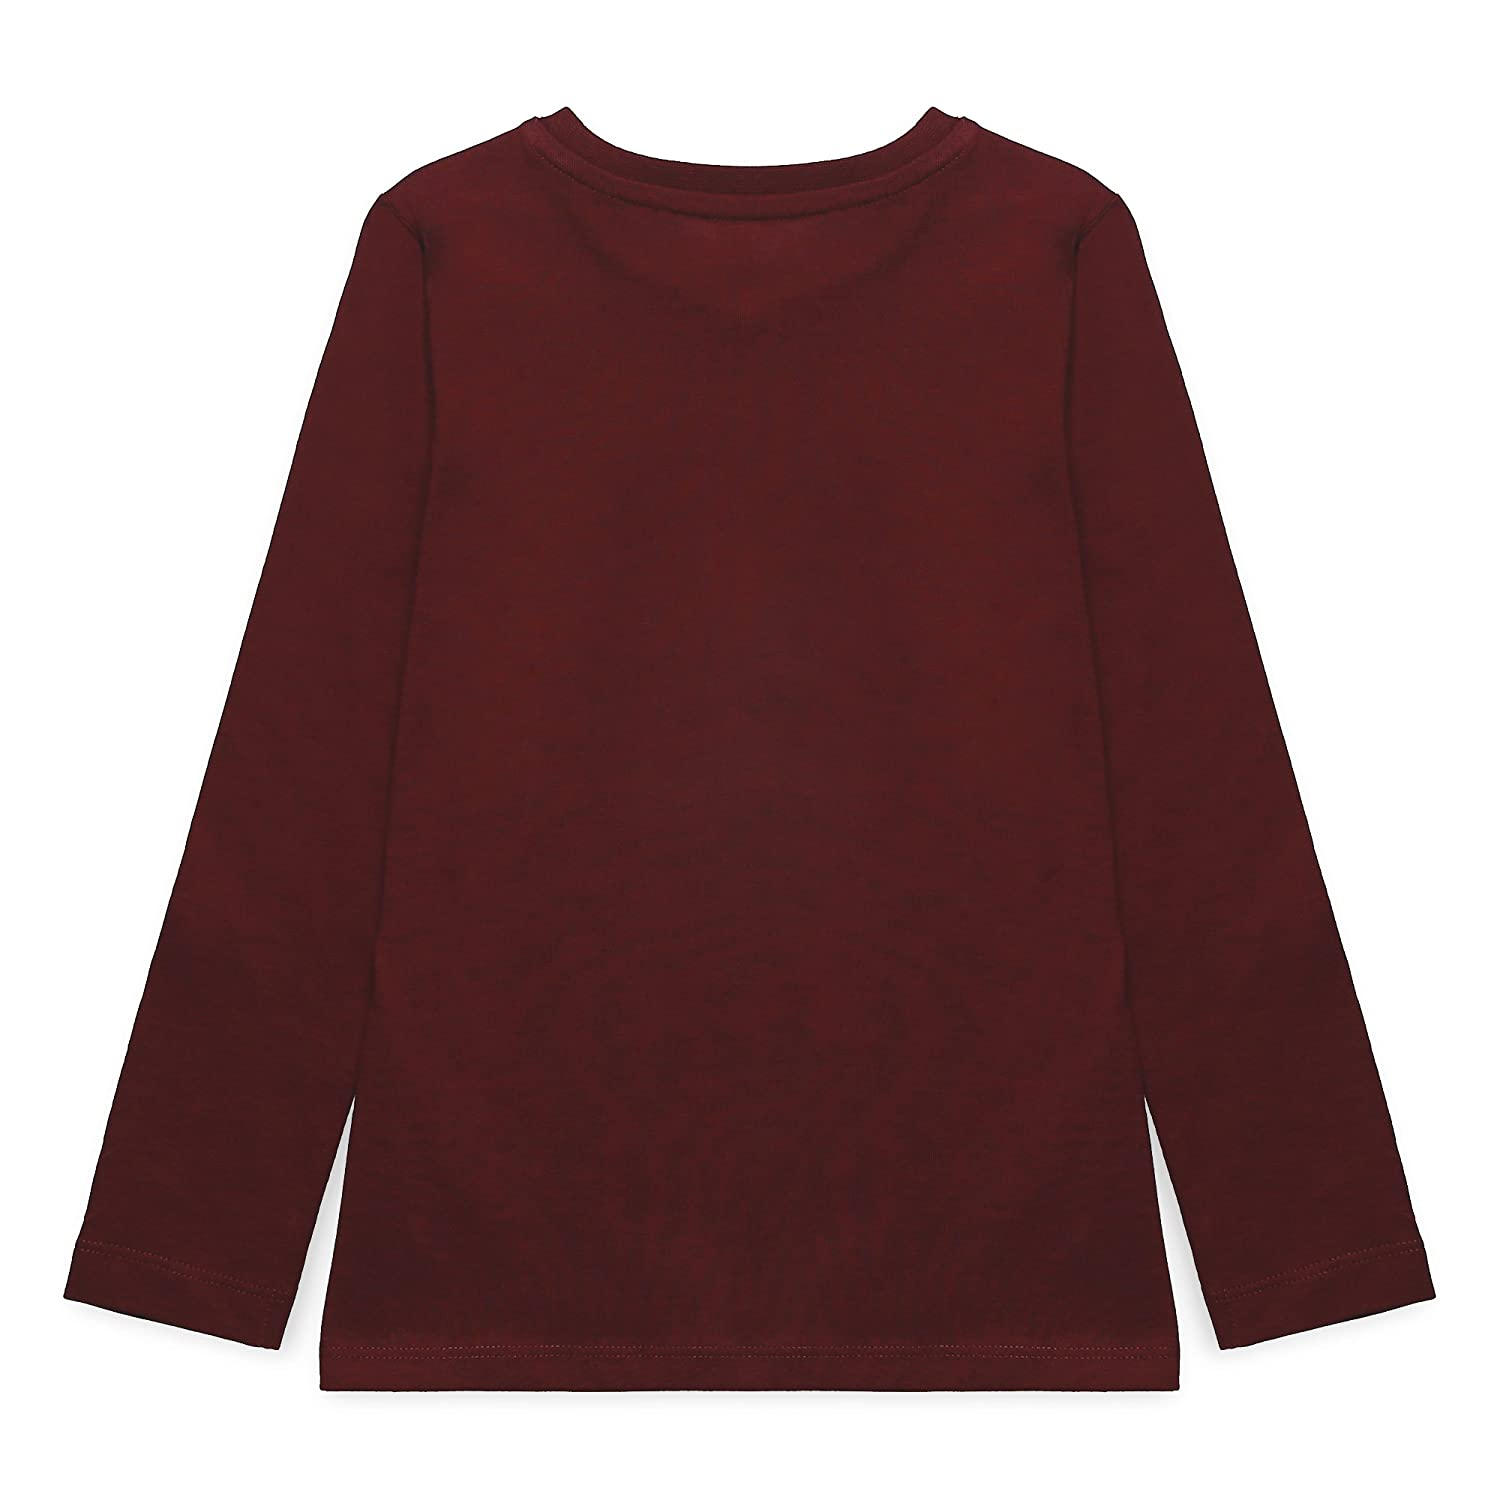 ESPRIT Girls Longsleeve T-Shirt